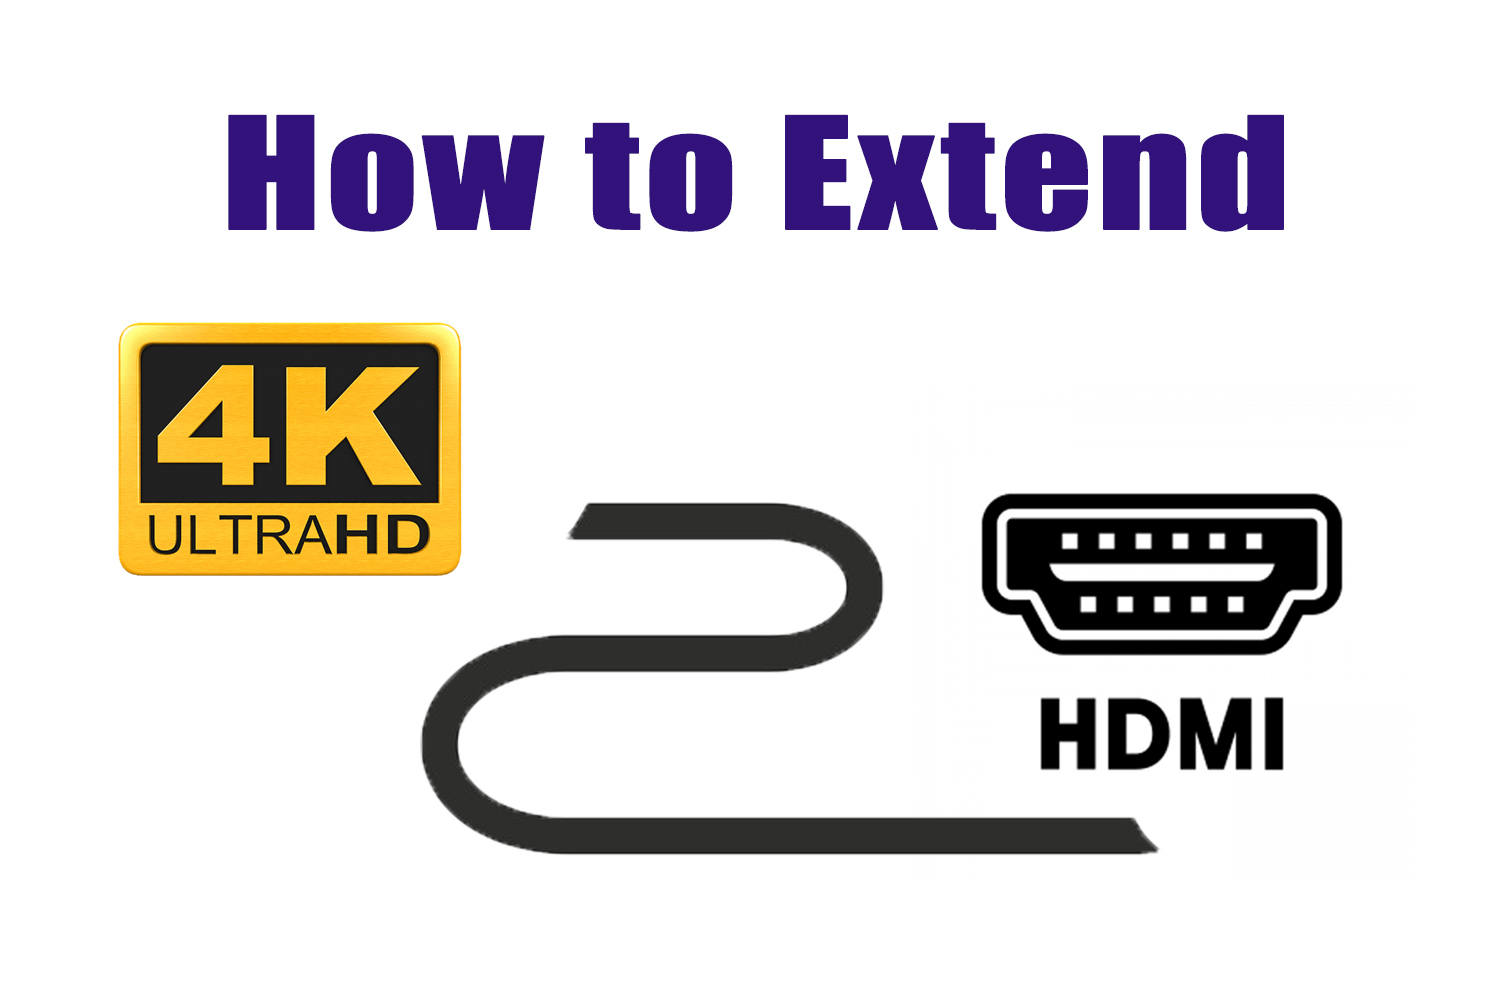 How to Extend an Ultra HD or 4K HDMI Signal